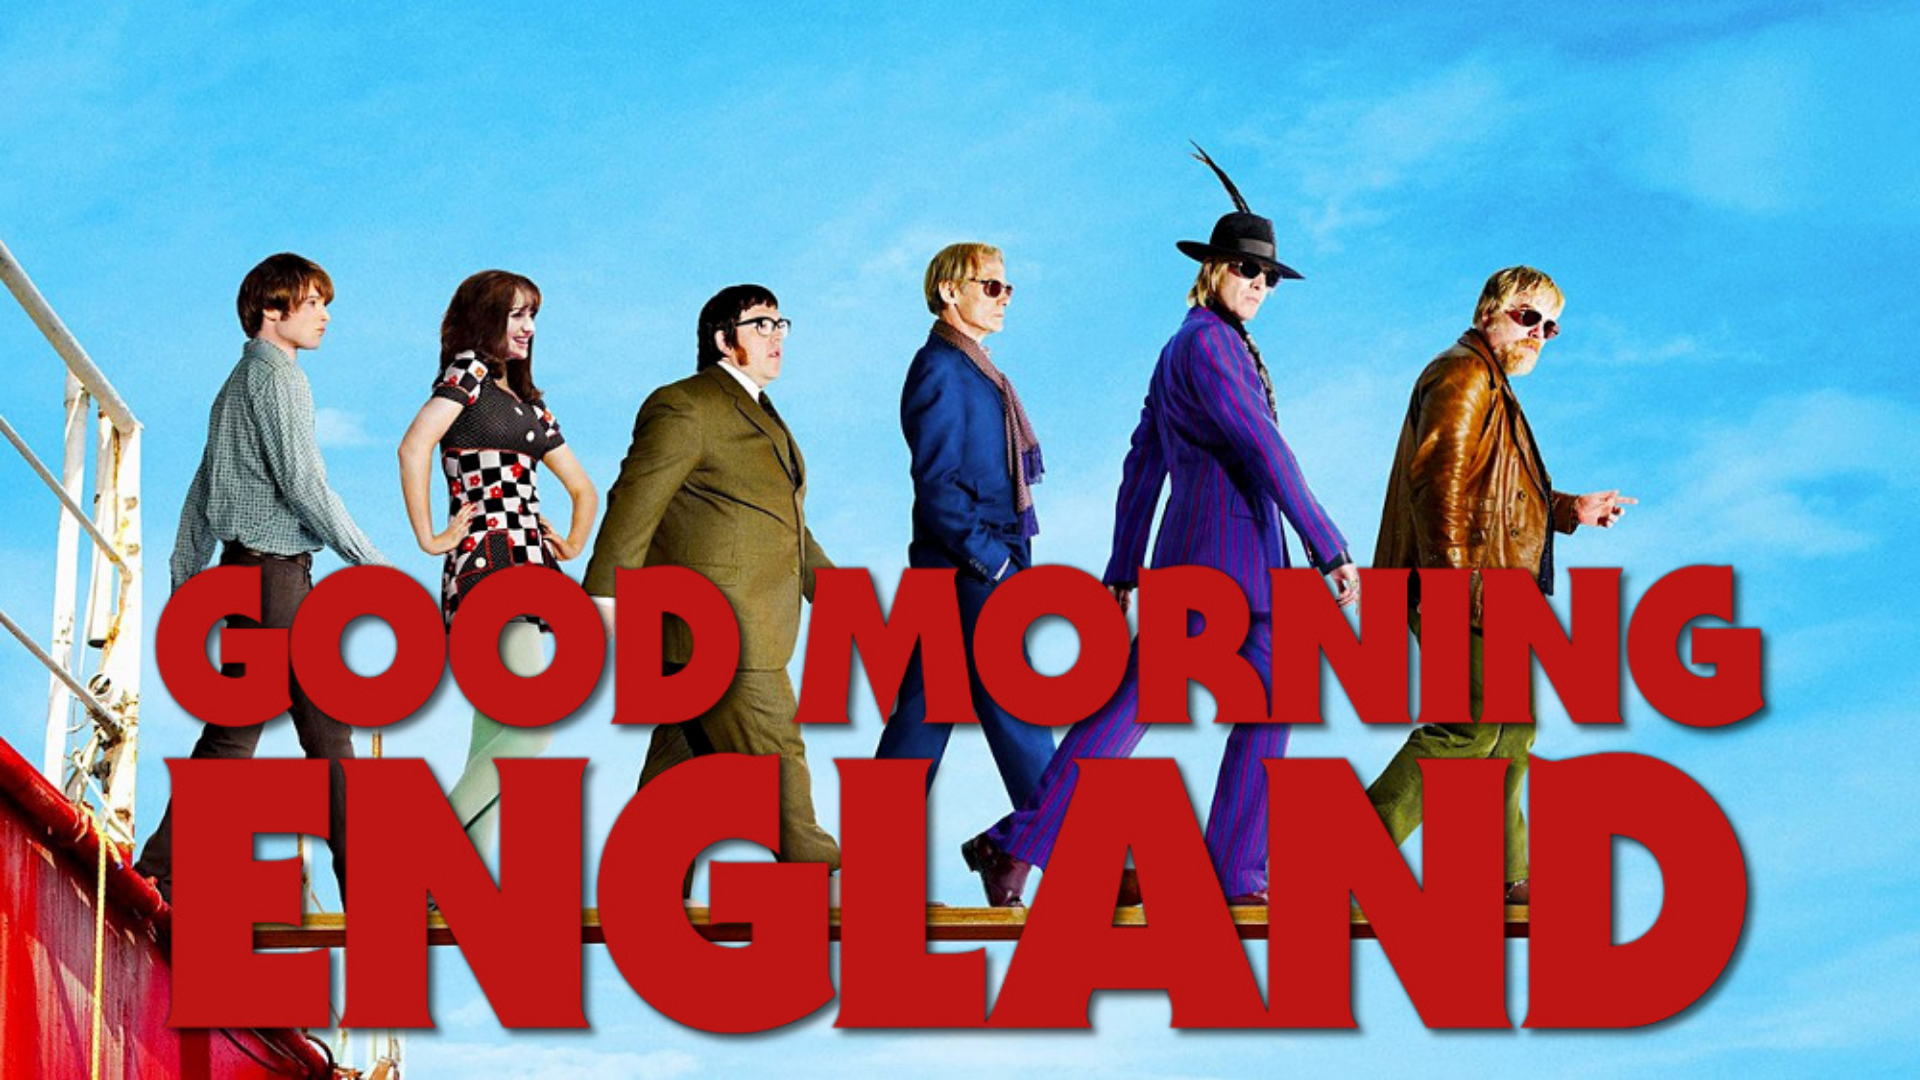 Critique « Good Morning England » (2009) : Rock'n'roll en haute mer !